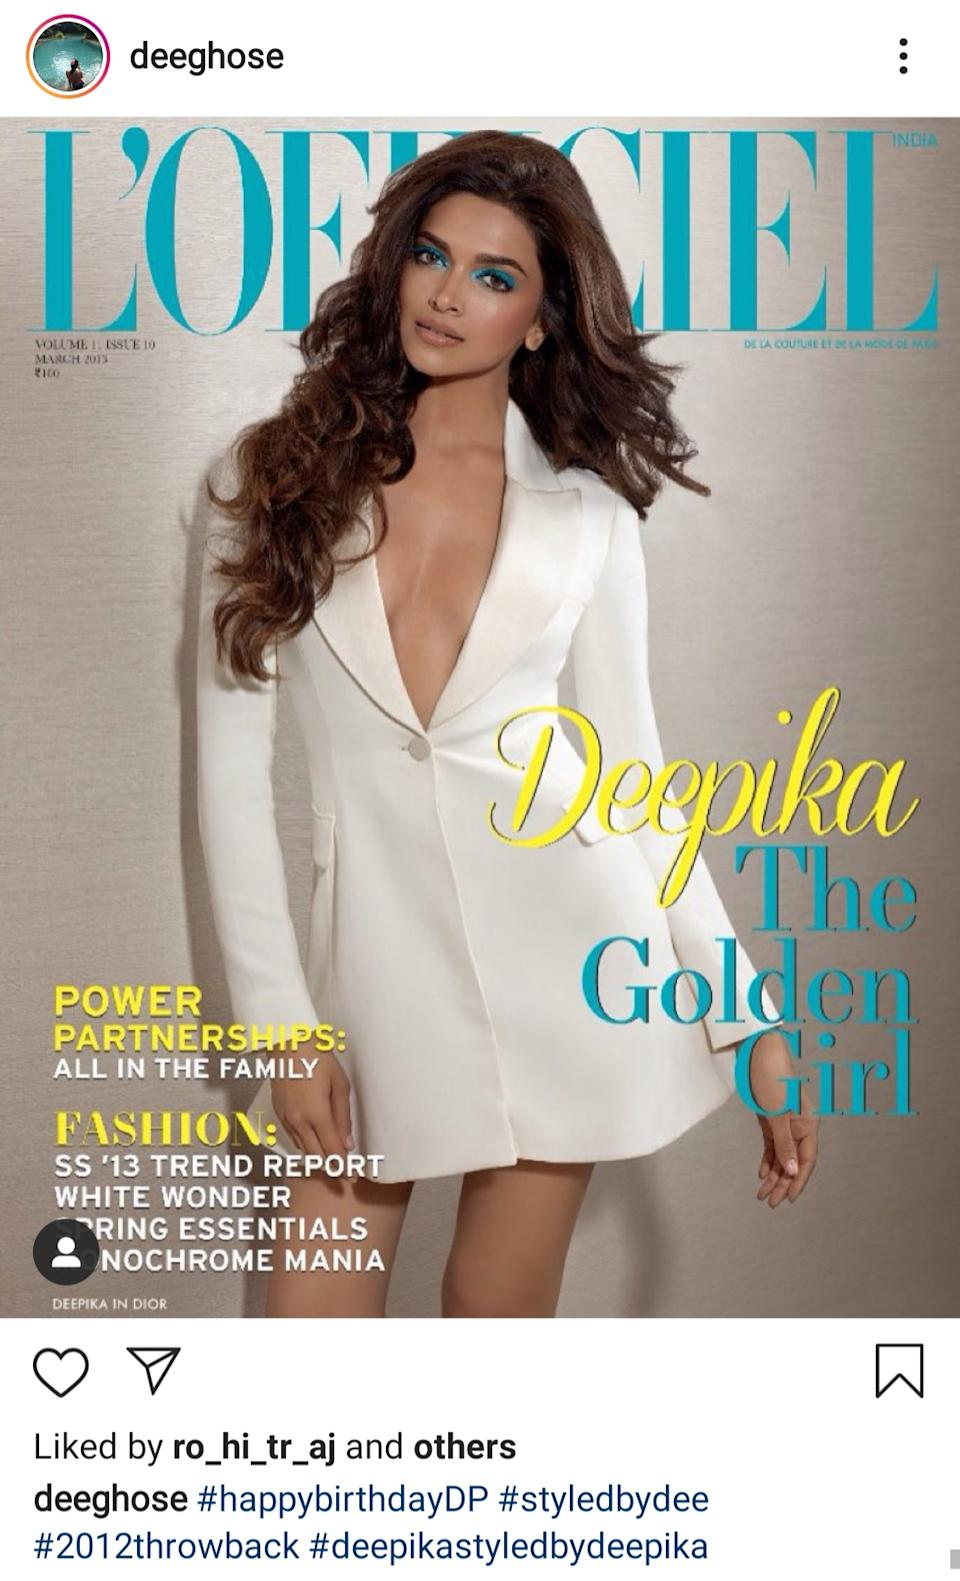 Styled by Deepika Ghose